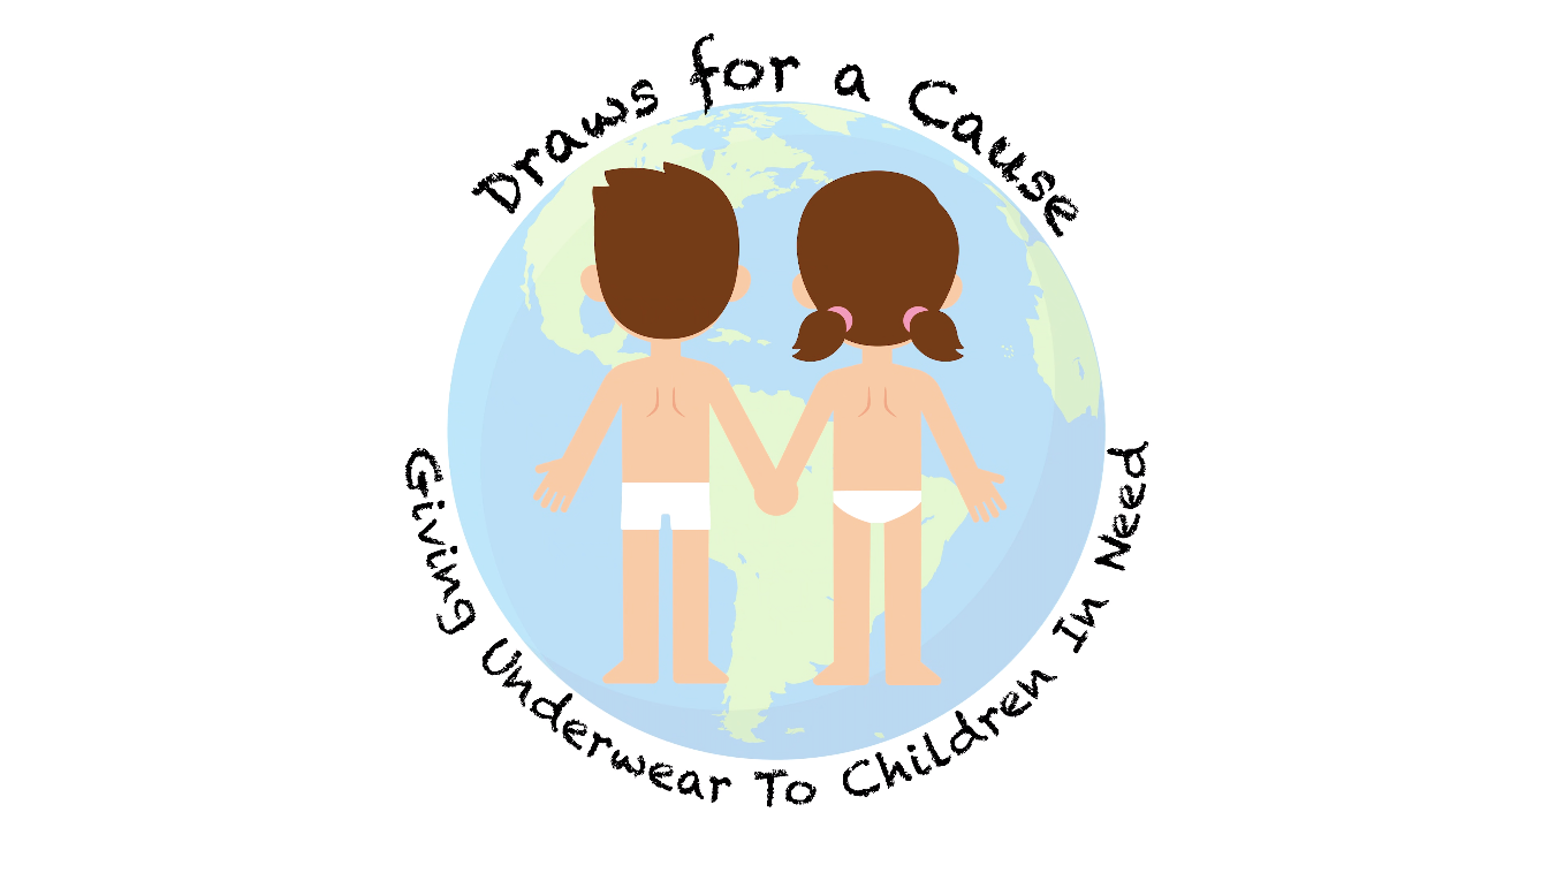 Draws For A Cause helps provide underwear to children in need. For every pair of underwear YOU purchase, one goes to a child in need.